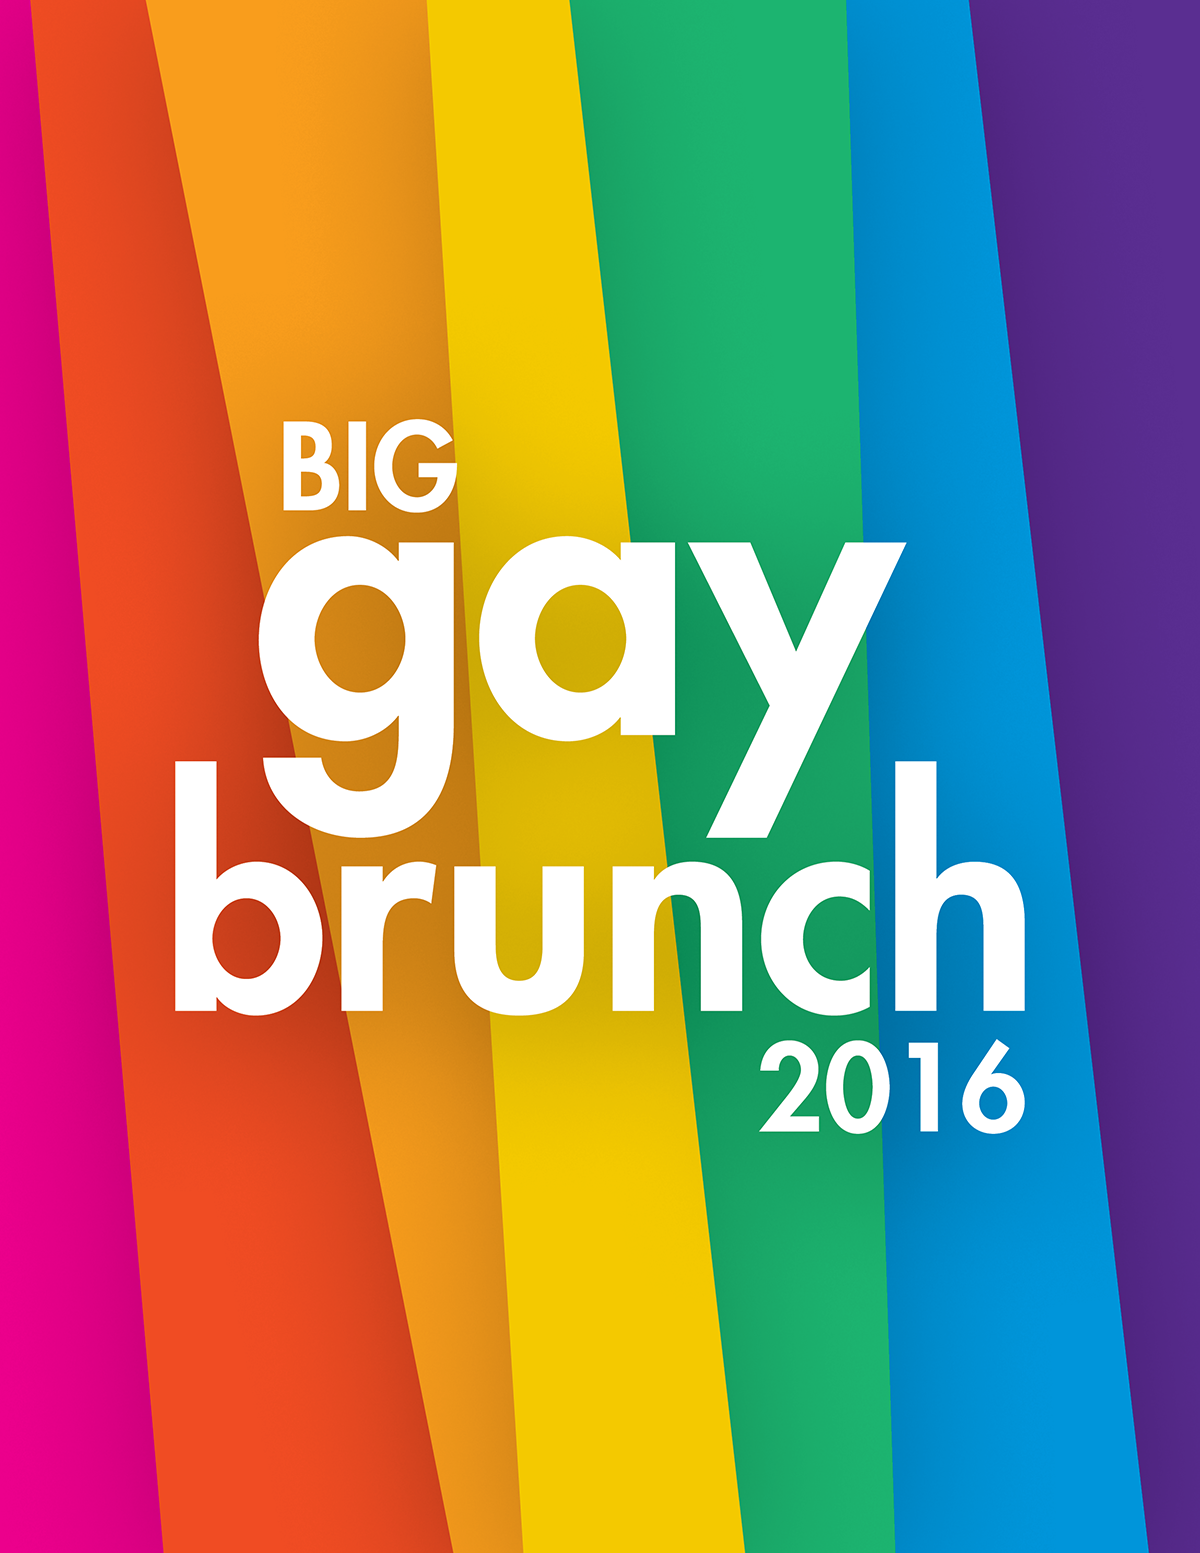 Big Gay Brunch 2016 Image